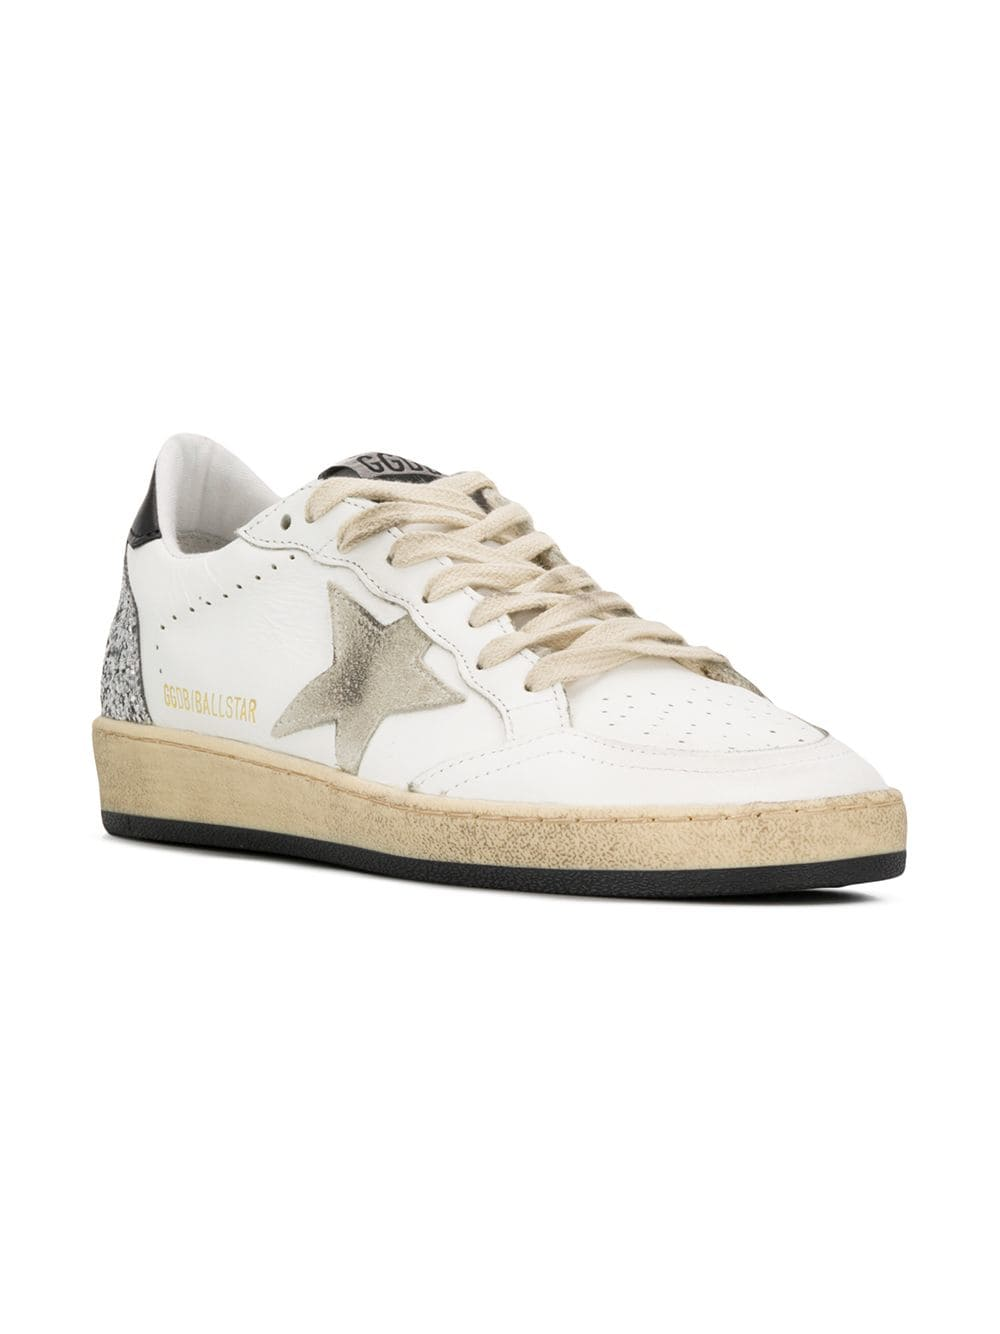 Picture of Golden Goose Deluxe Brand | Ball Star